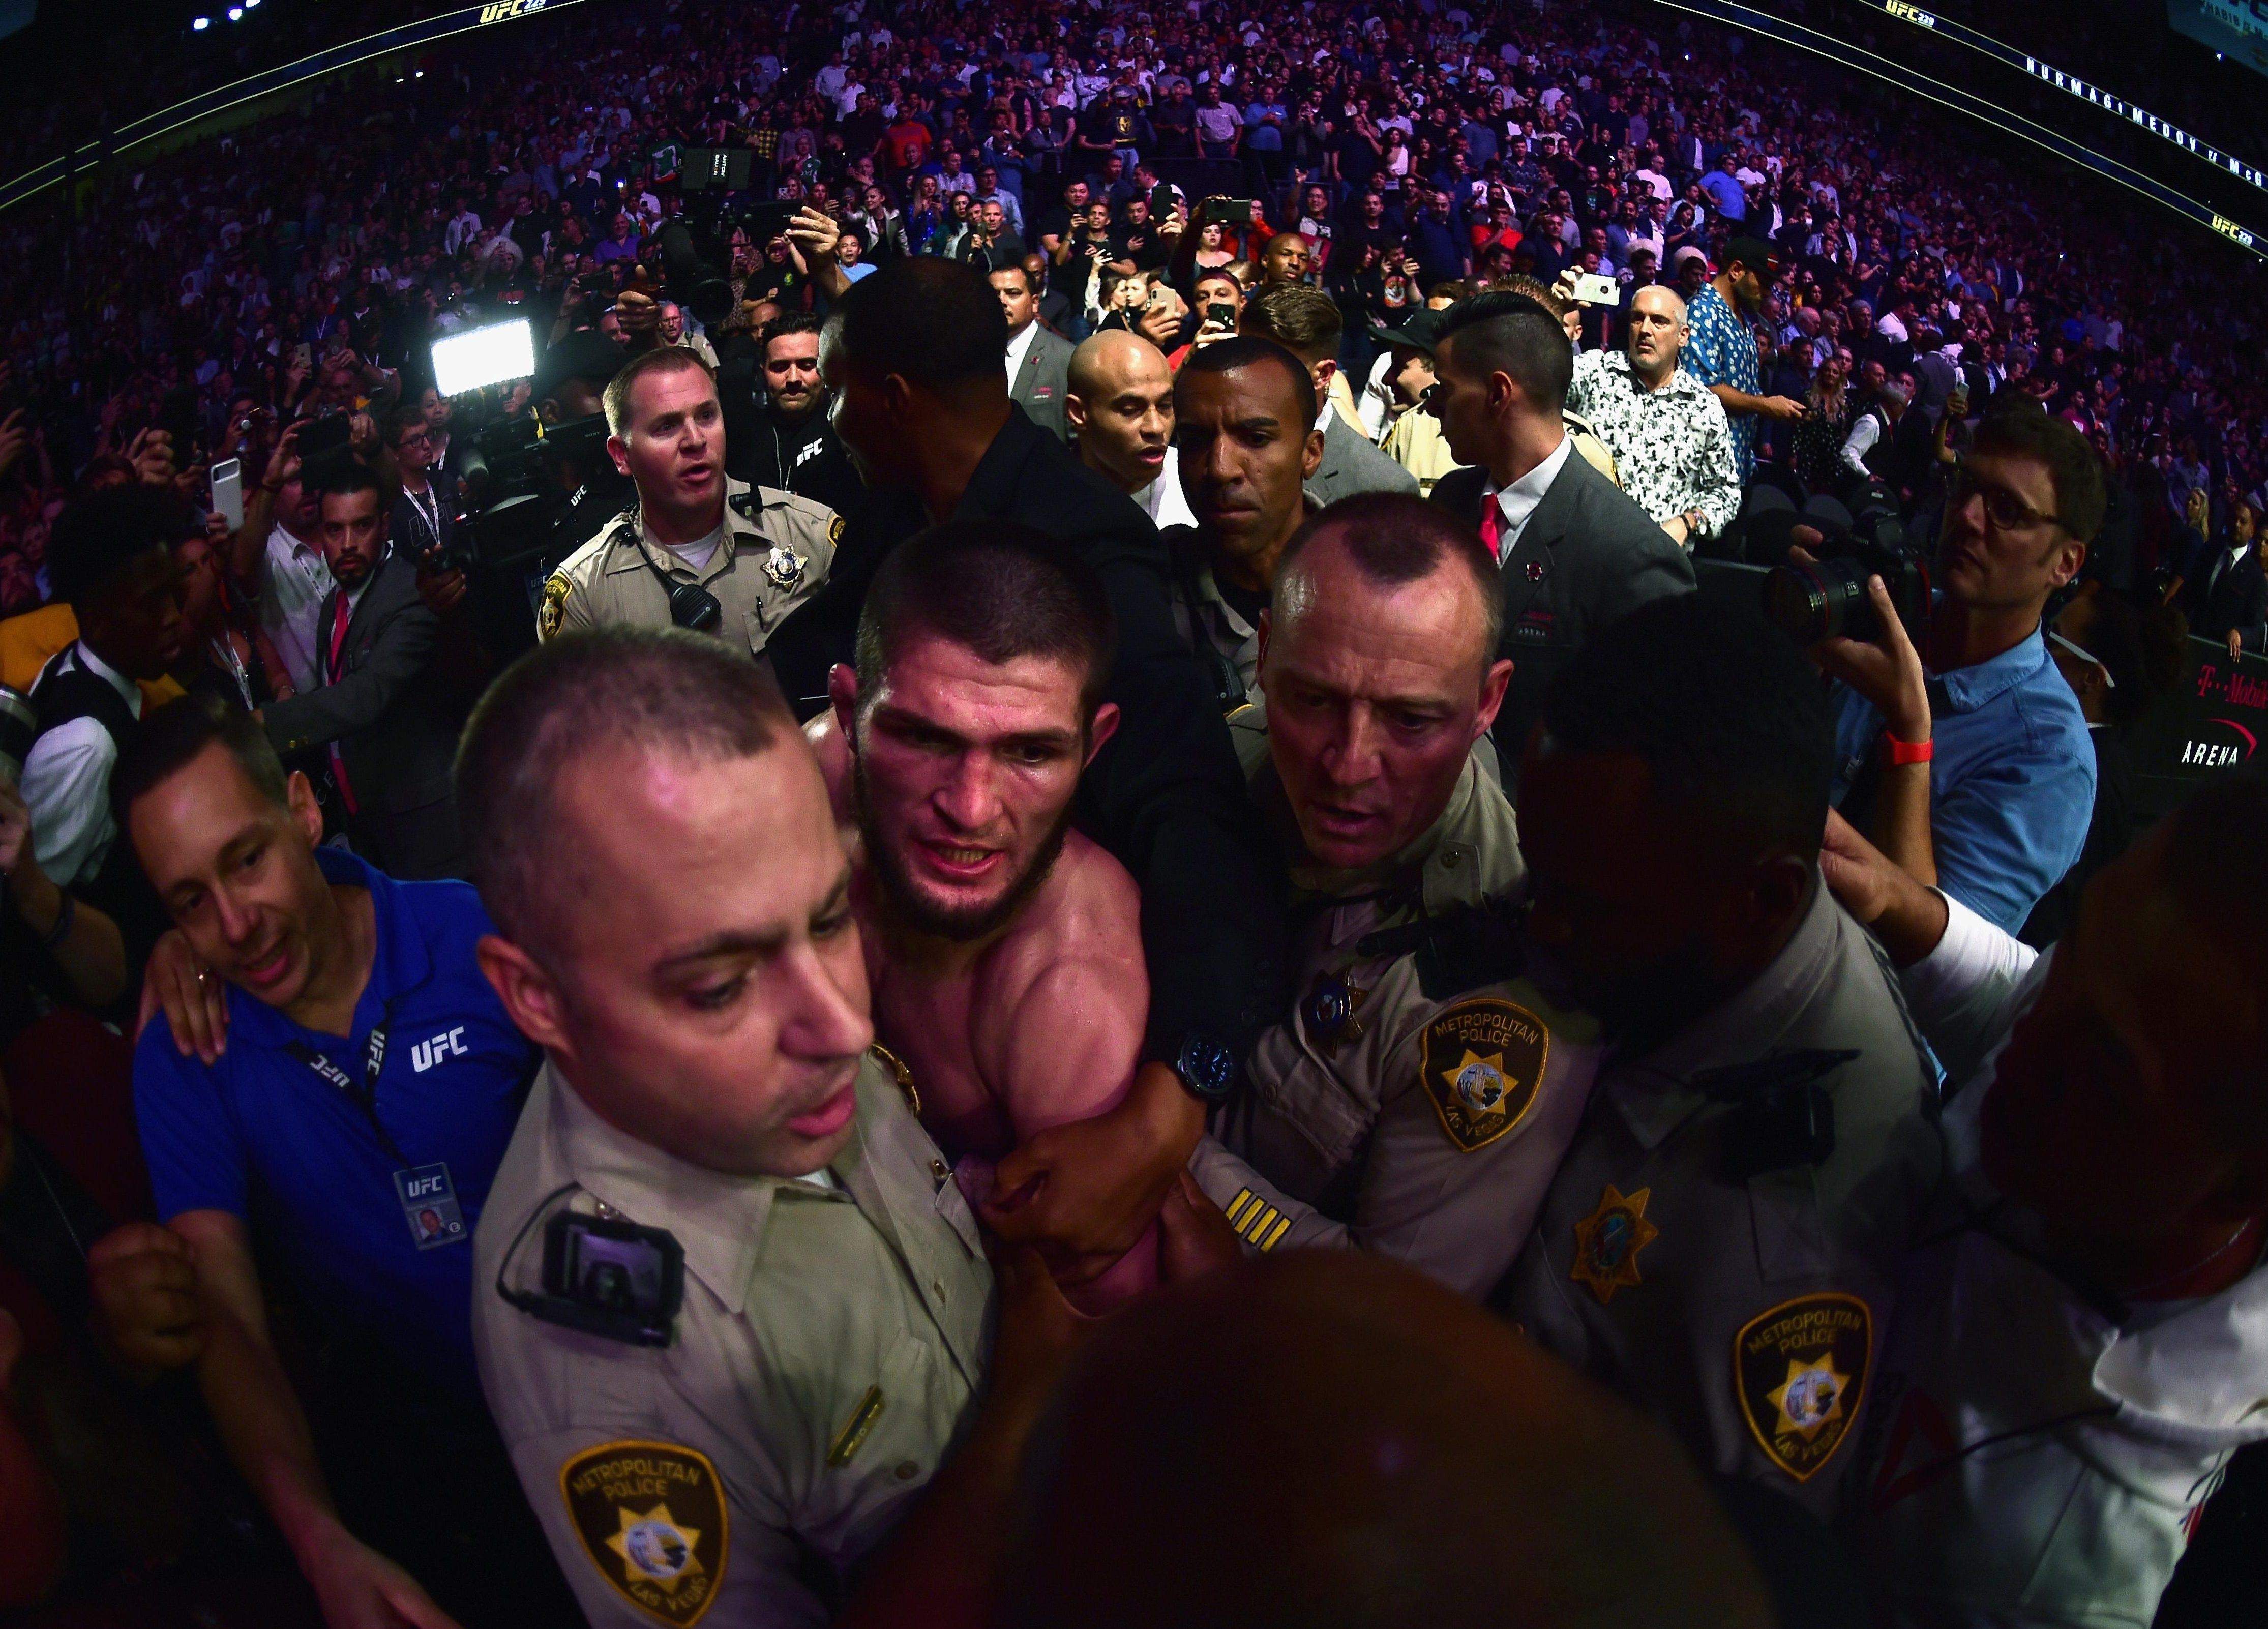 The Russian jumped out of the octagon post-fight as he brawled with McGregor's teammate Dillon Danis